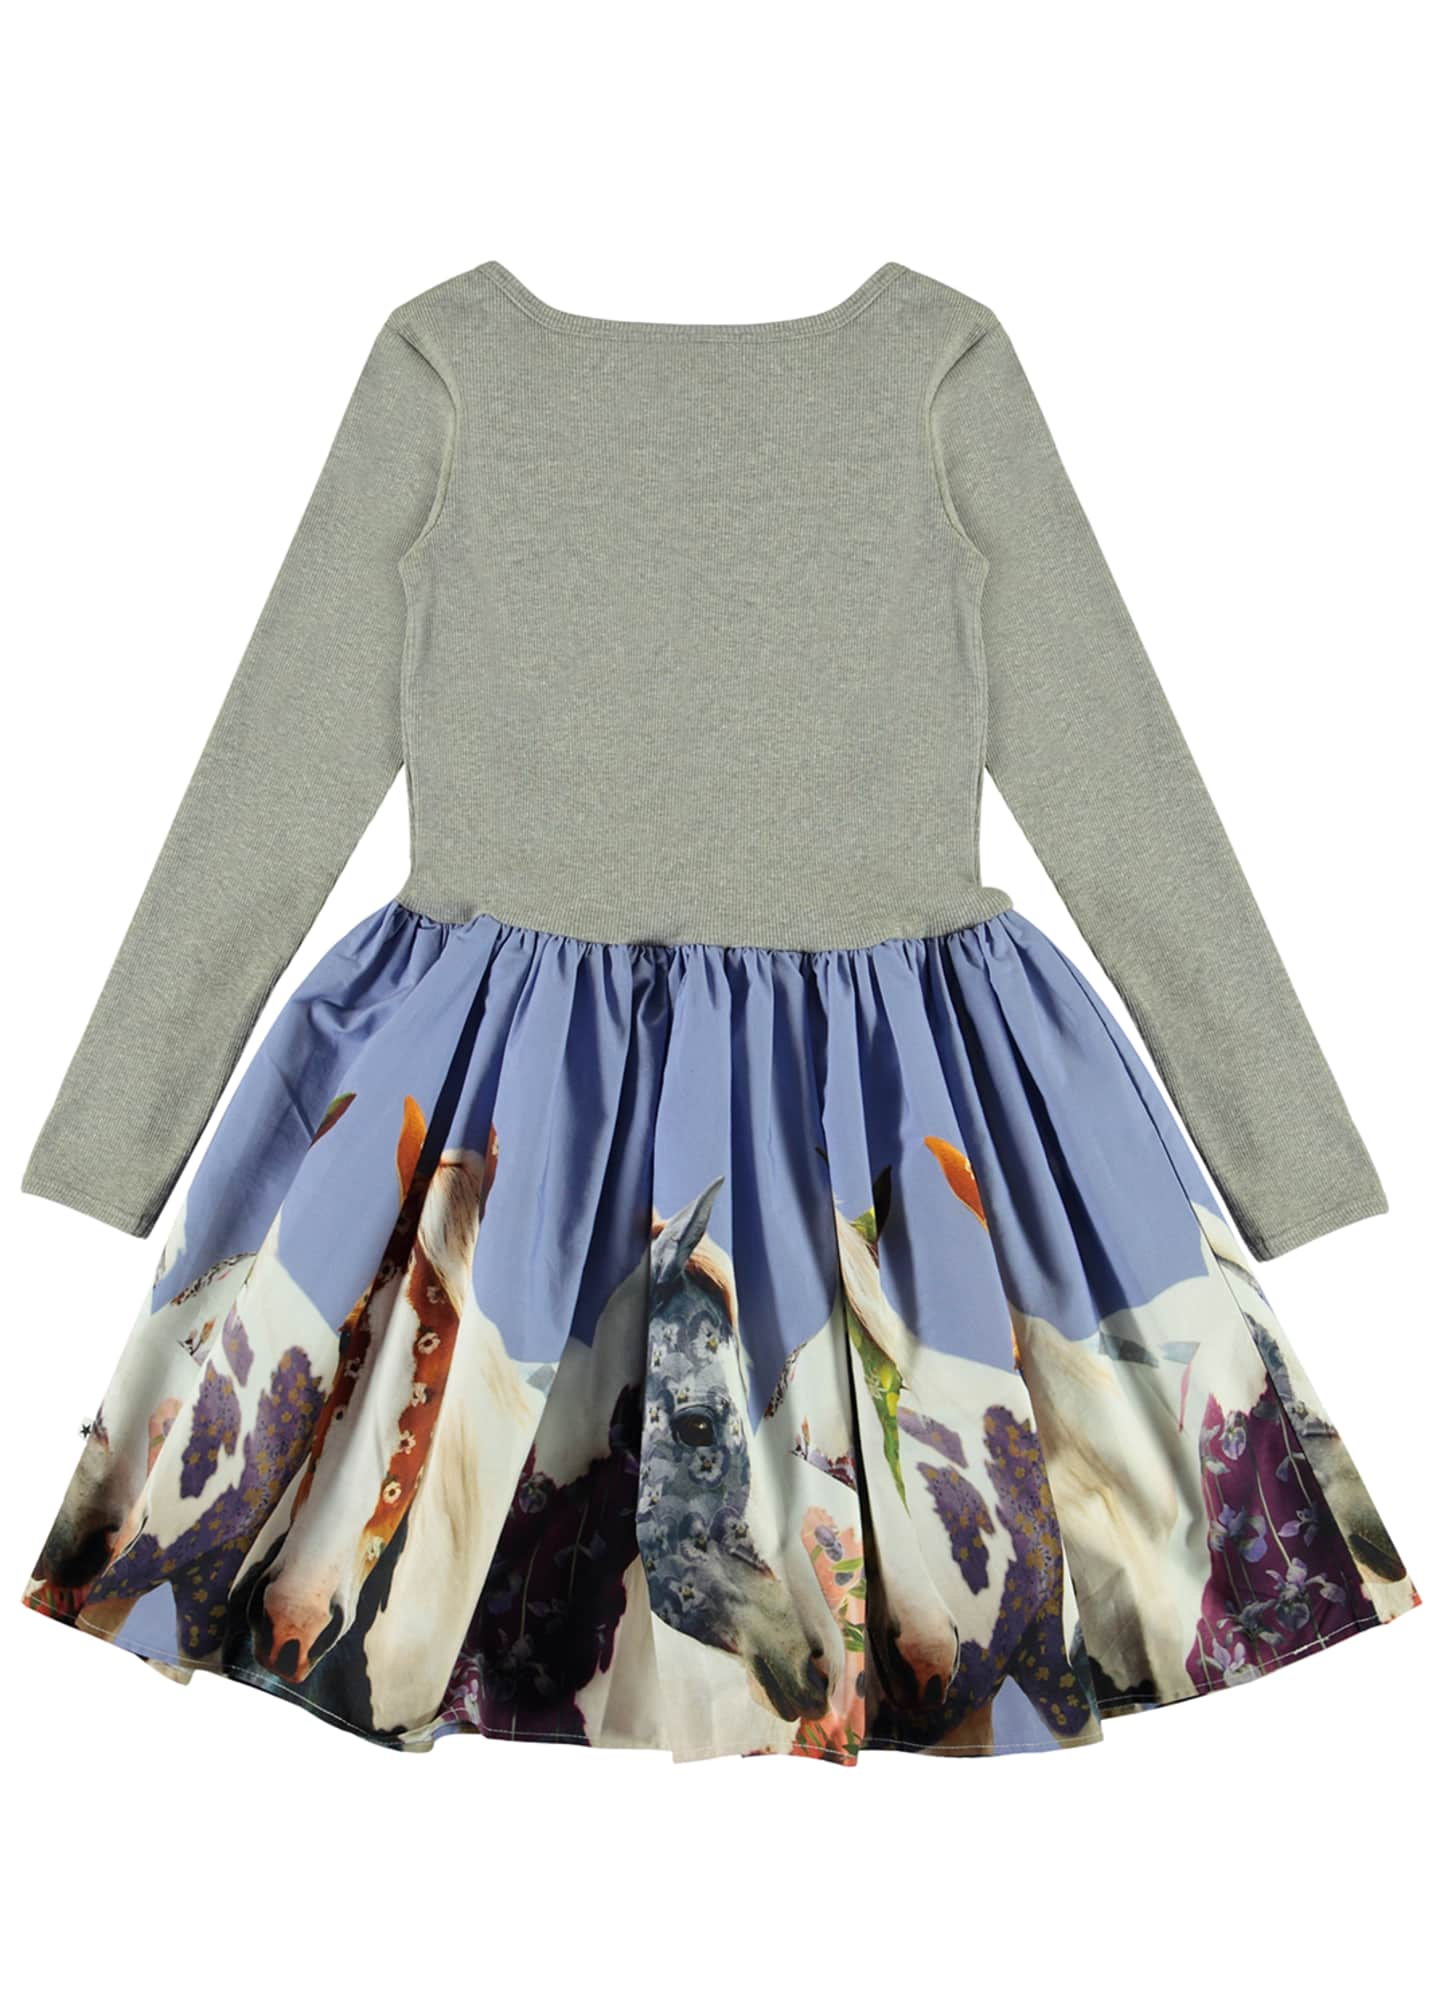 Image 3 of 3: Girl's Casie Ribbed Long-Sleeve Dress w/ Horse Print Skirt, Size 2T-12